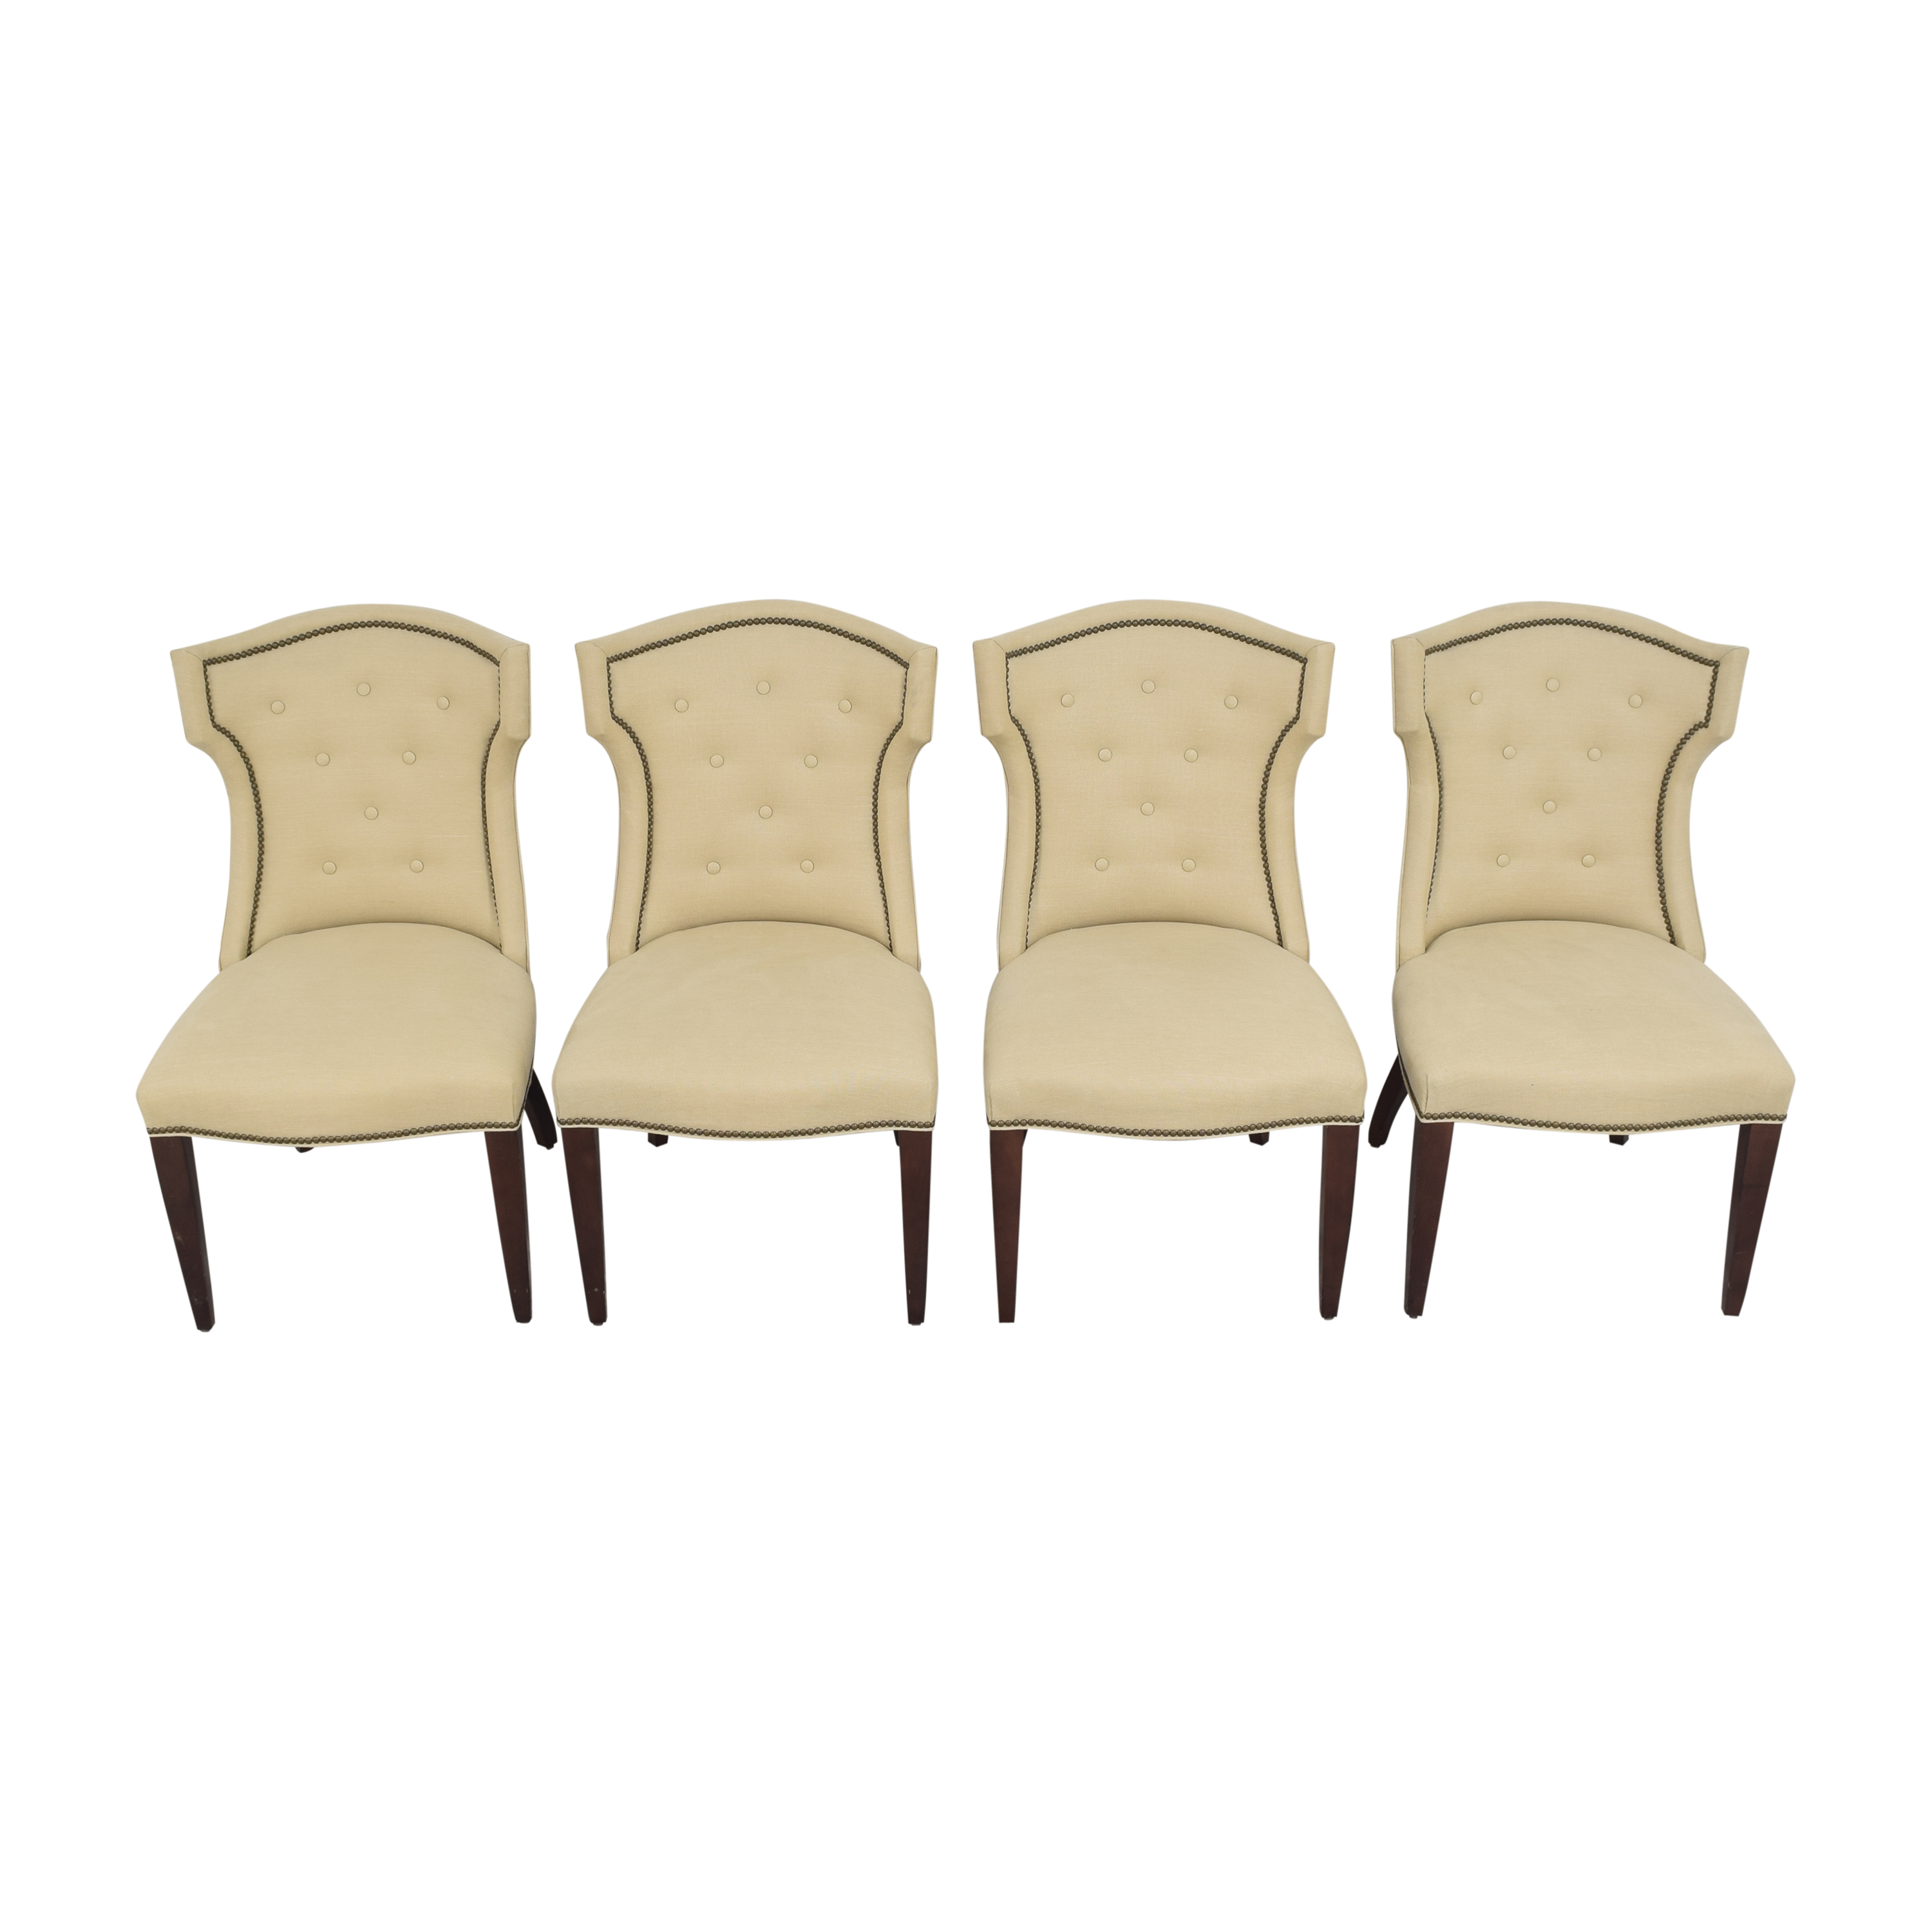 Lillian August Lillian August Quinn Dining Chairs on sale